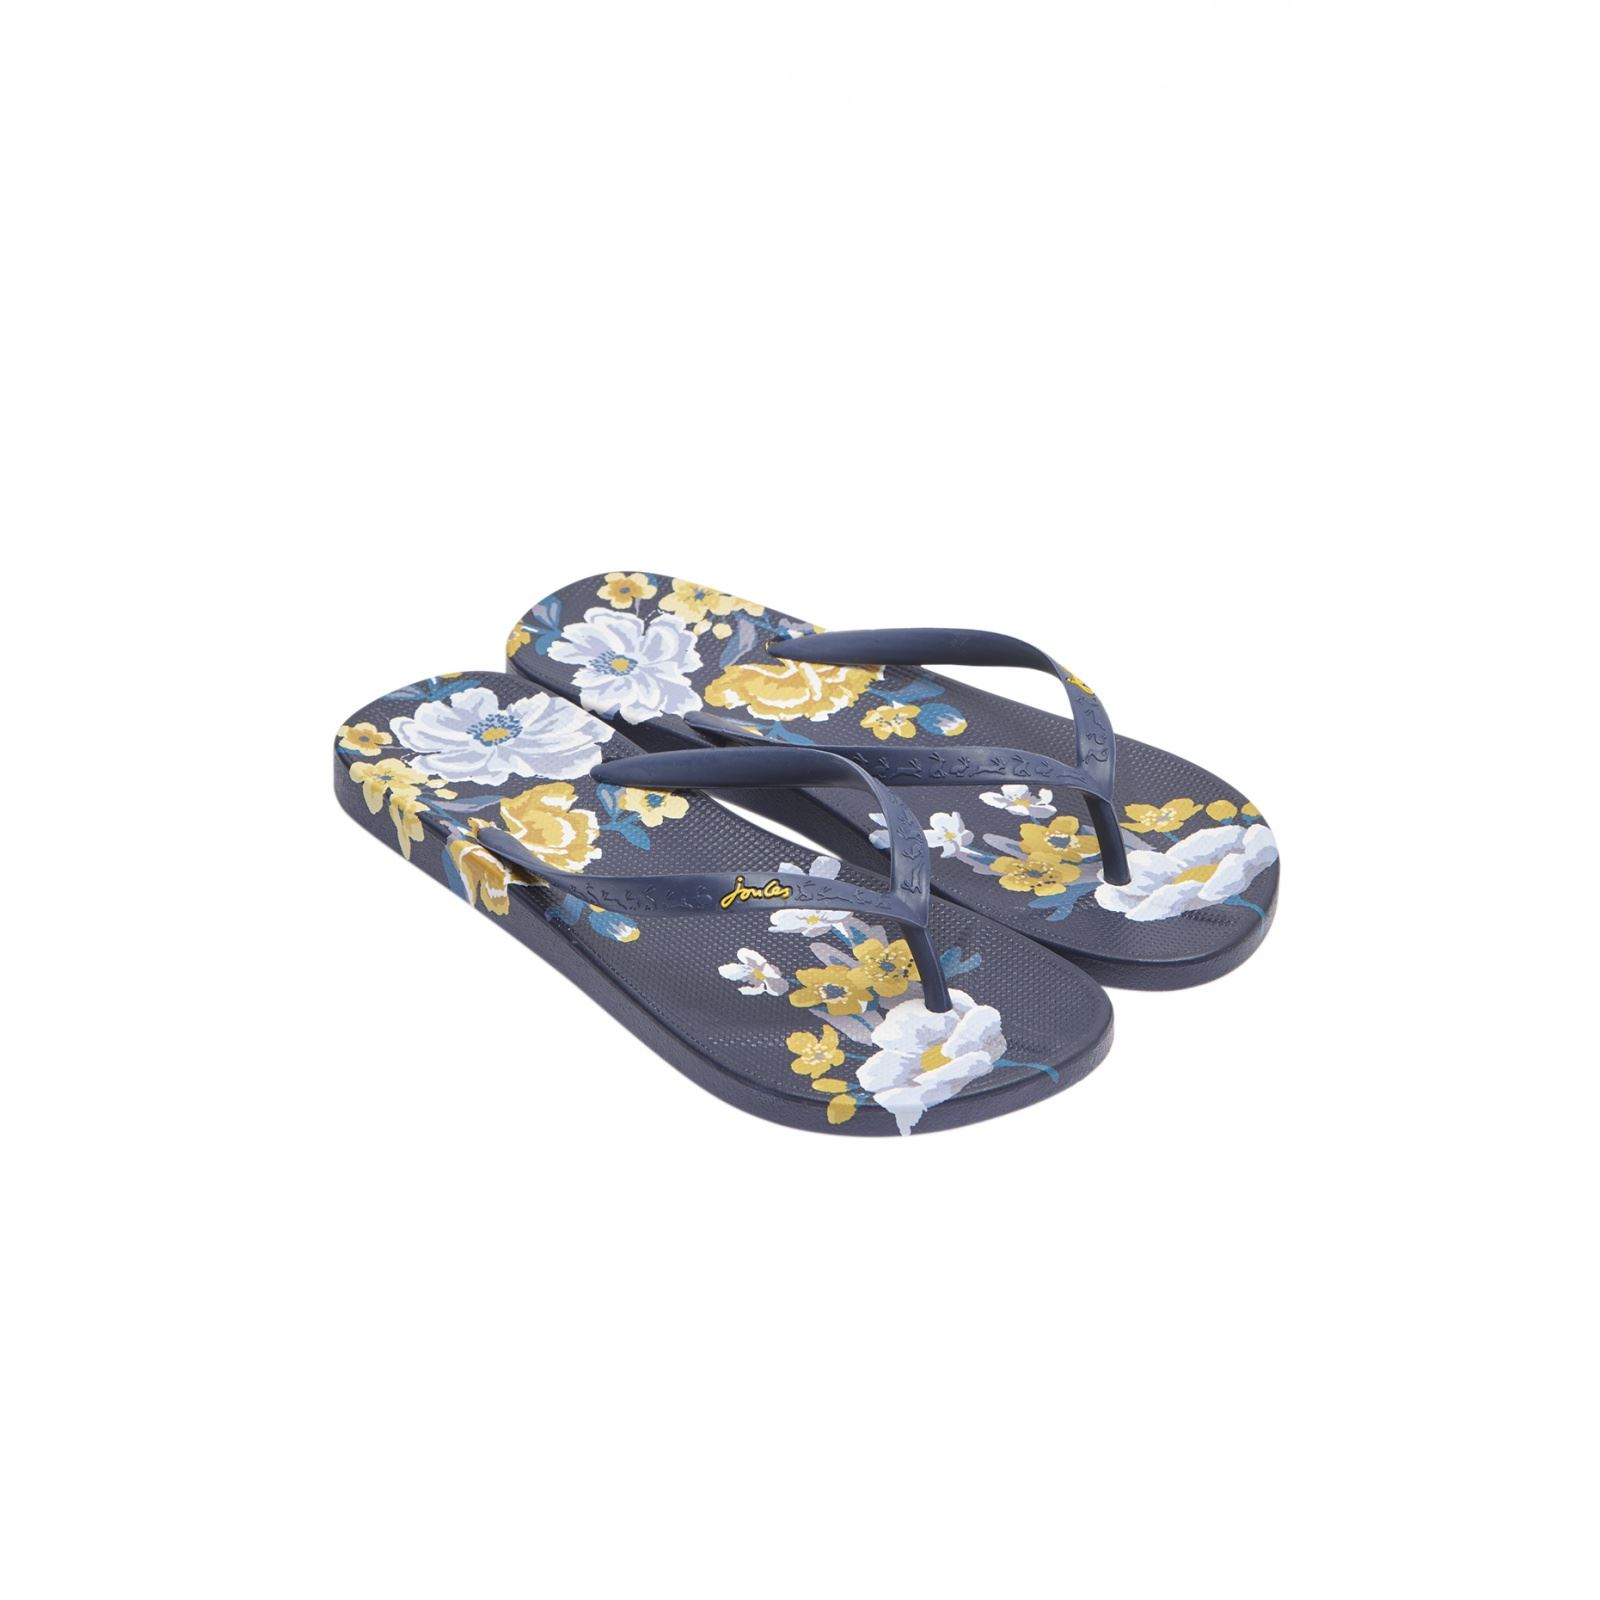 Joules-Flip-Flops-Sandals-Summer-Flip-Flop-NEW-2019-COLOURS thumbnail 22